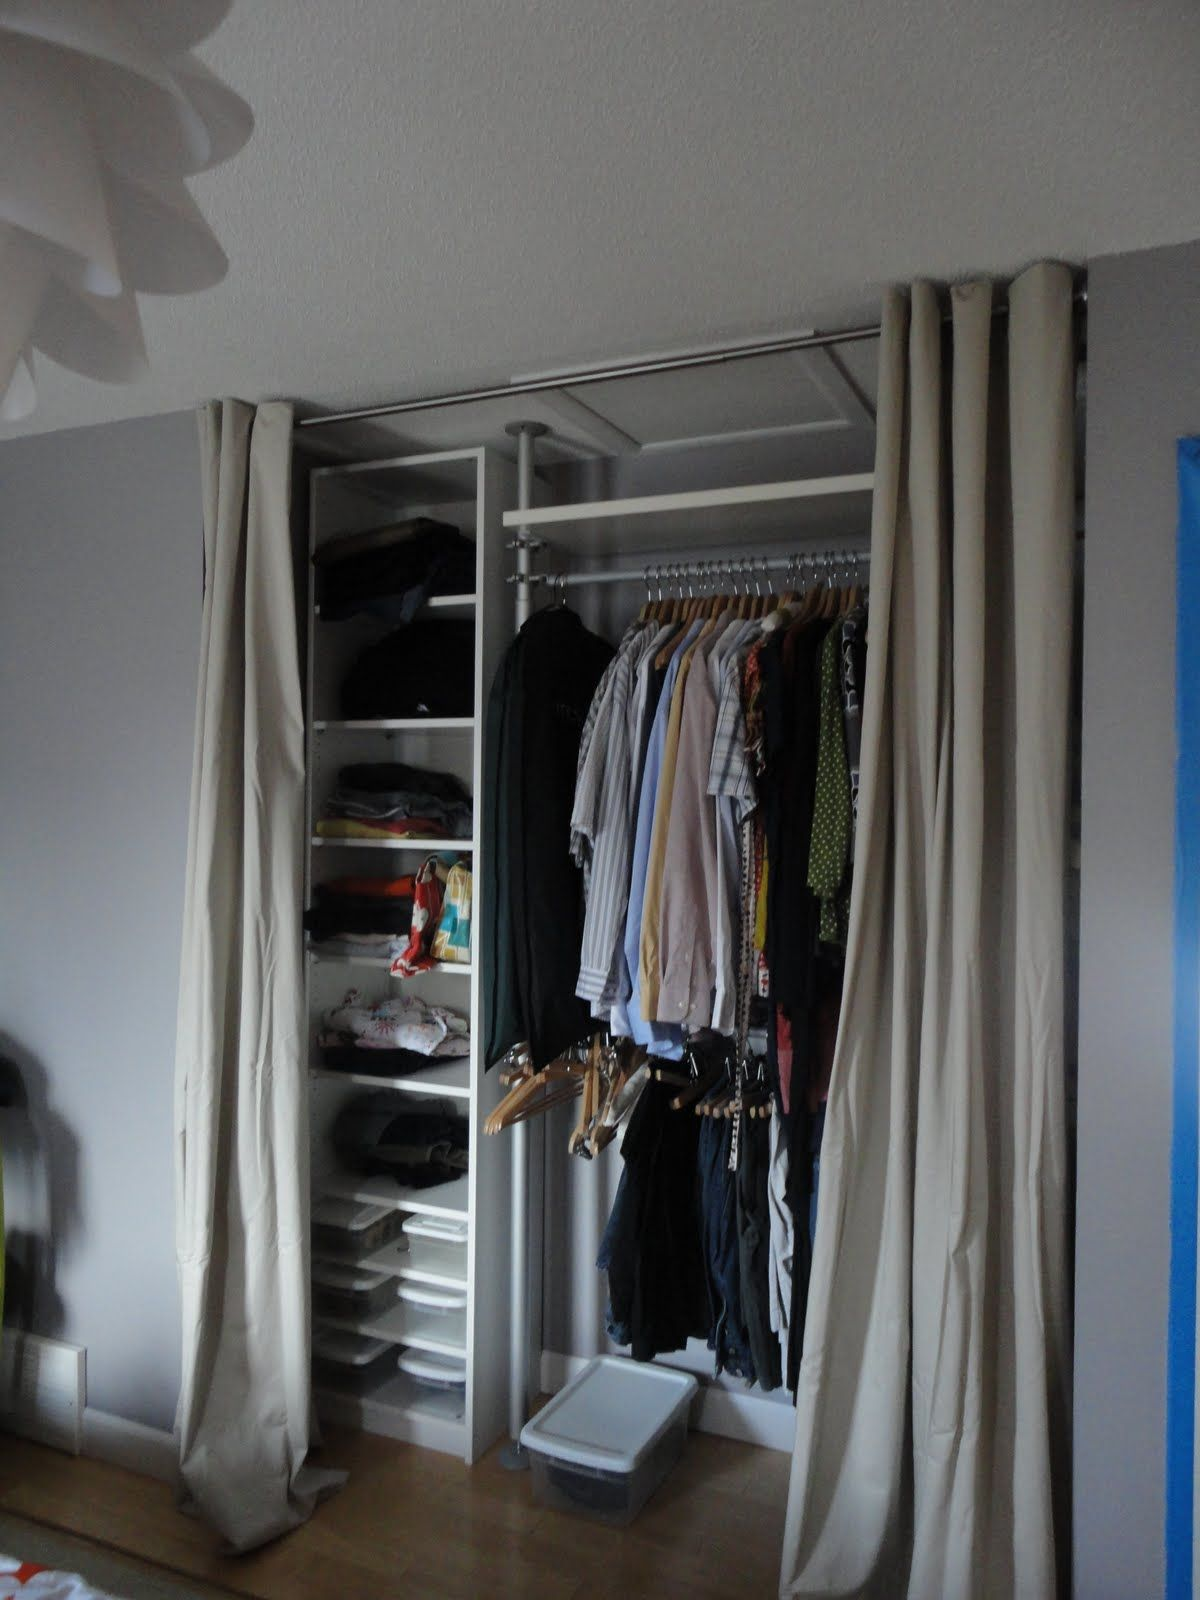 Delightful Add A Nook In Wasted Space For Extra Closet STOLMEN Closet Idea From Ikea